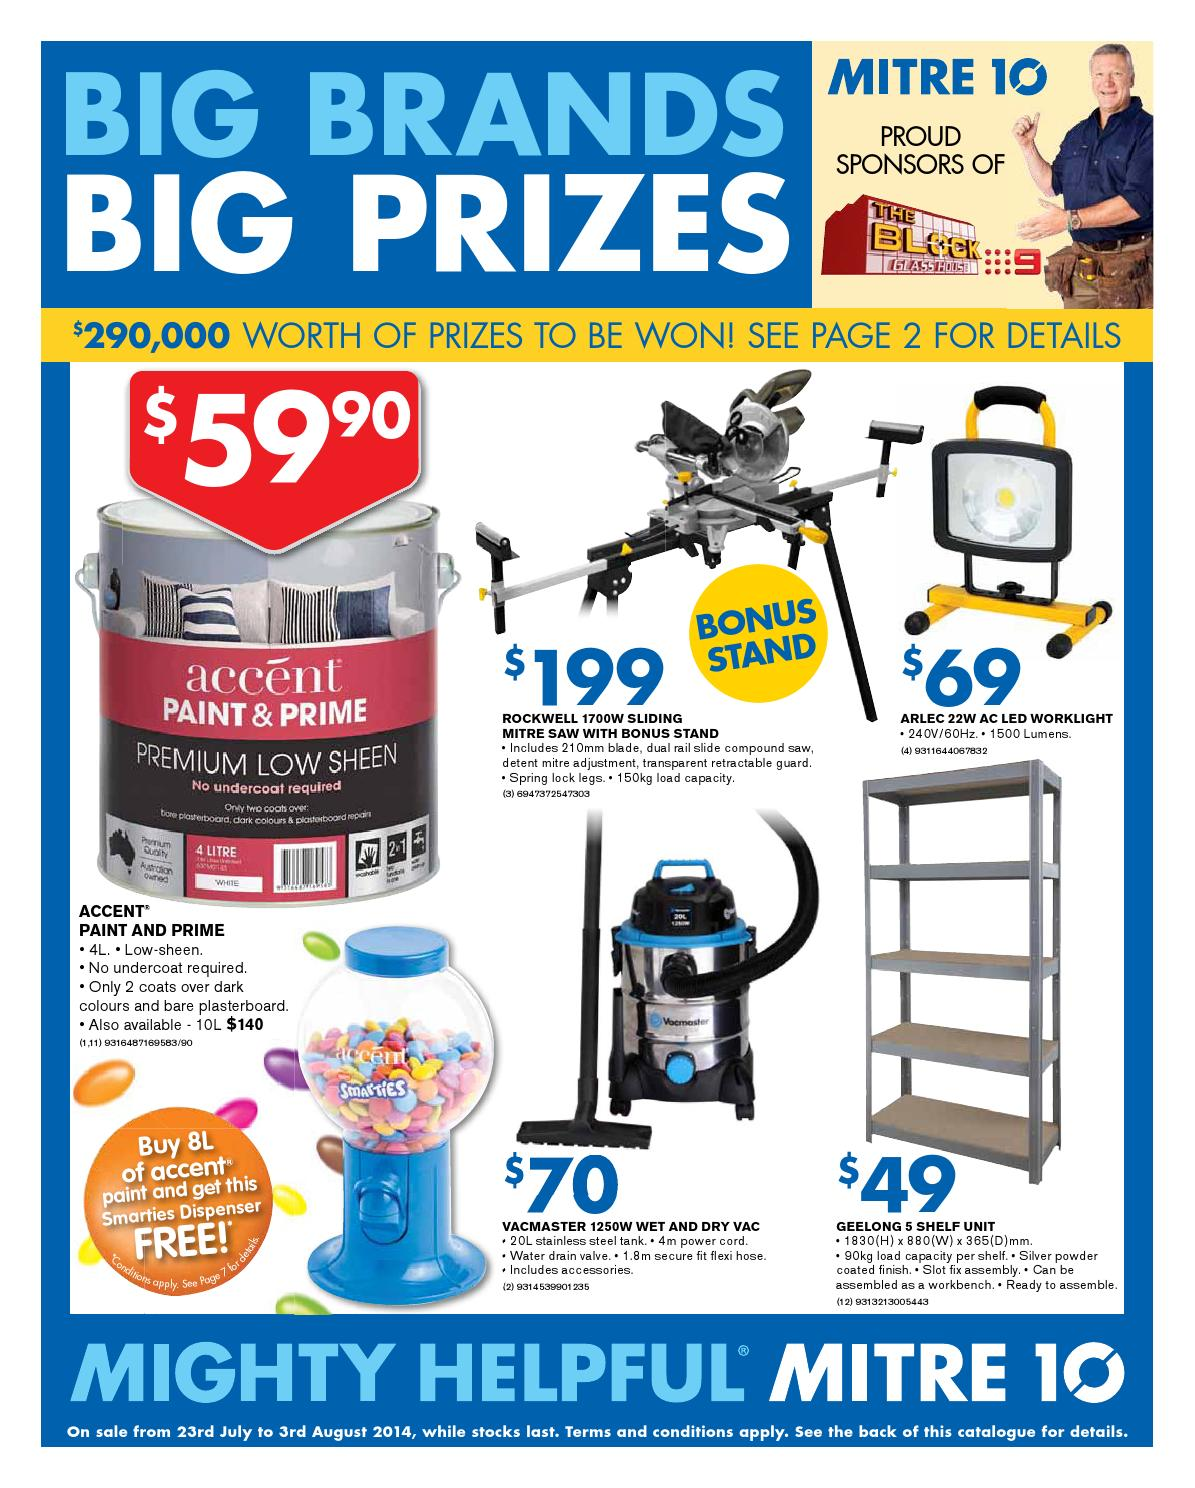 Mitre 10 Catalogue – 23 July to 3 August 2014 by Echo Publications